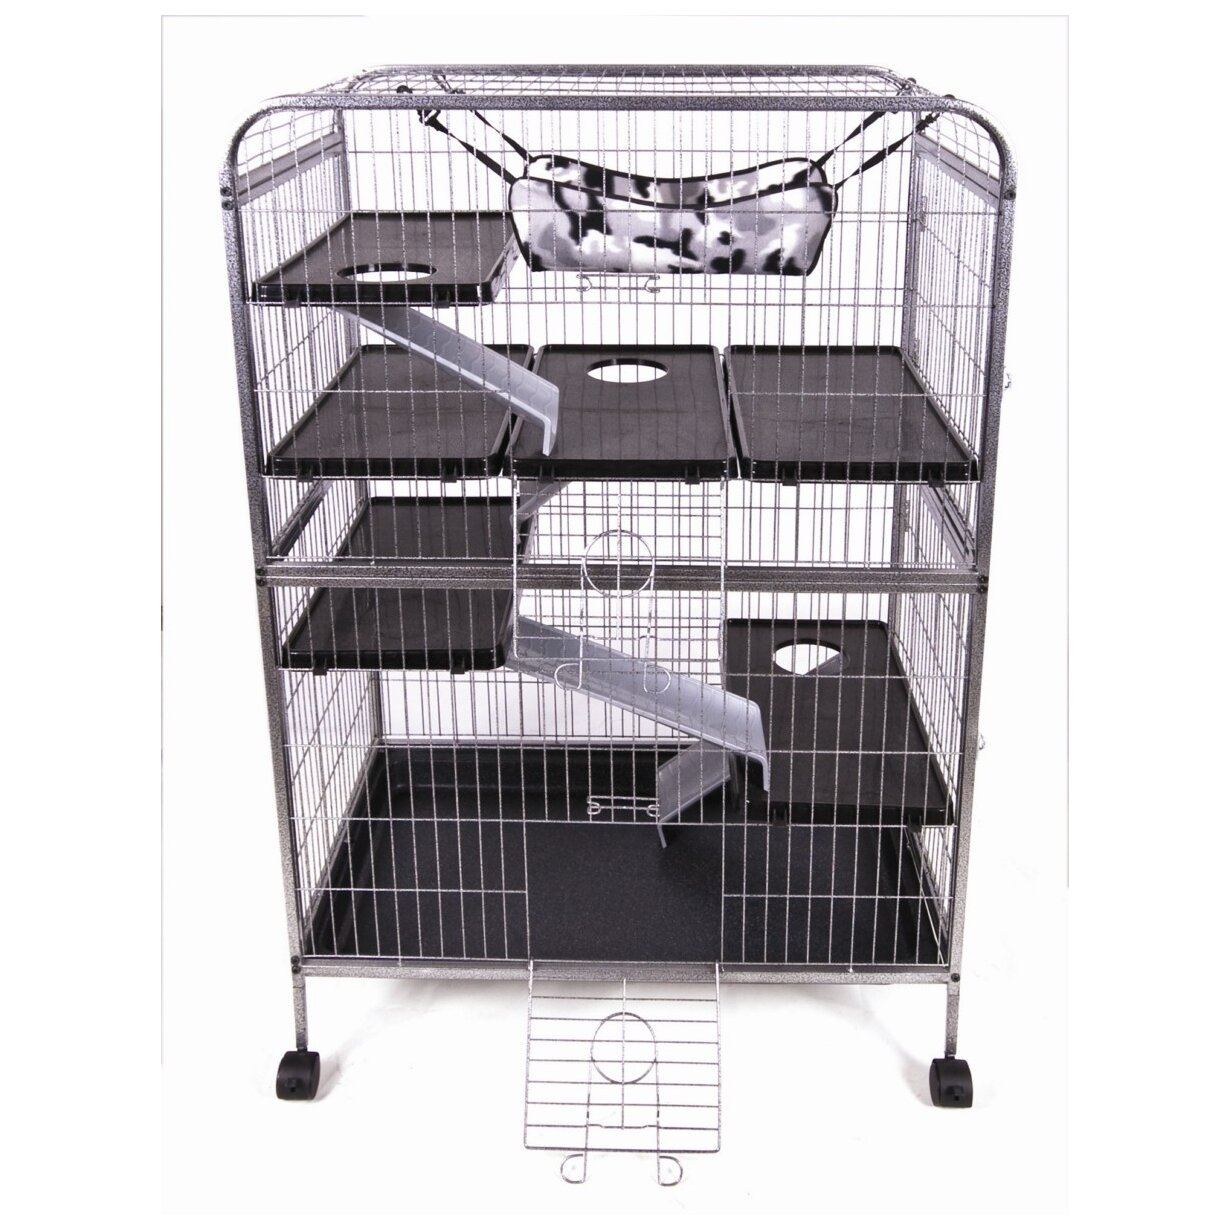 Ware Manufacturing Living Room Series Ferret Cage Reviews Wayfair